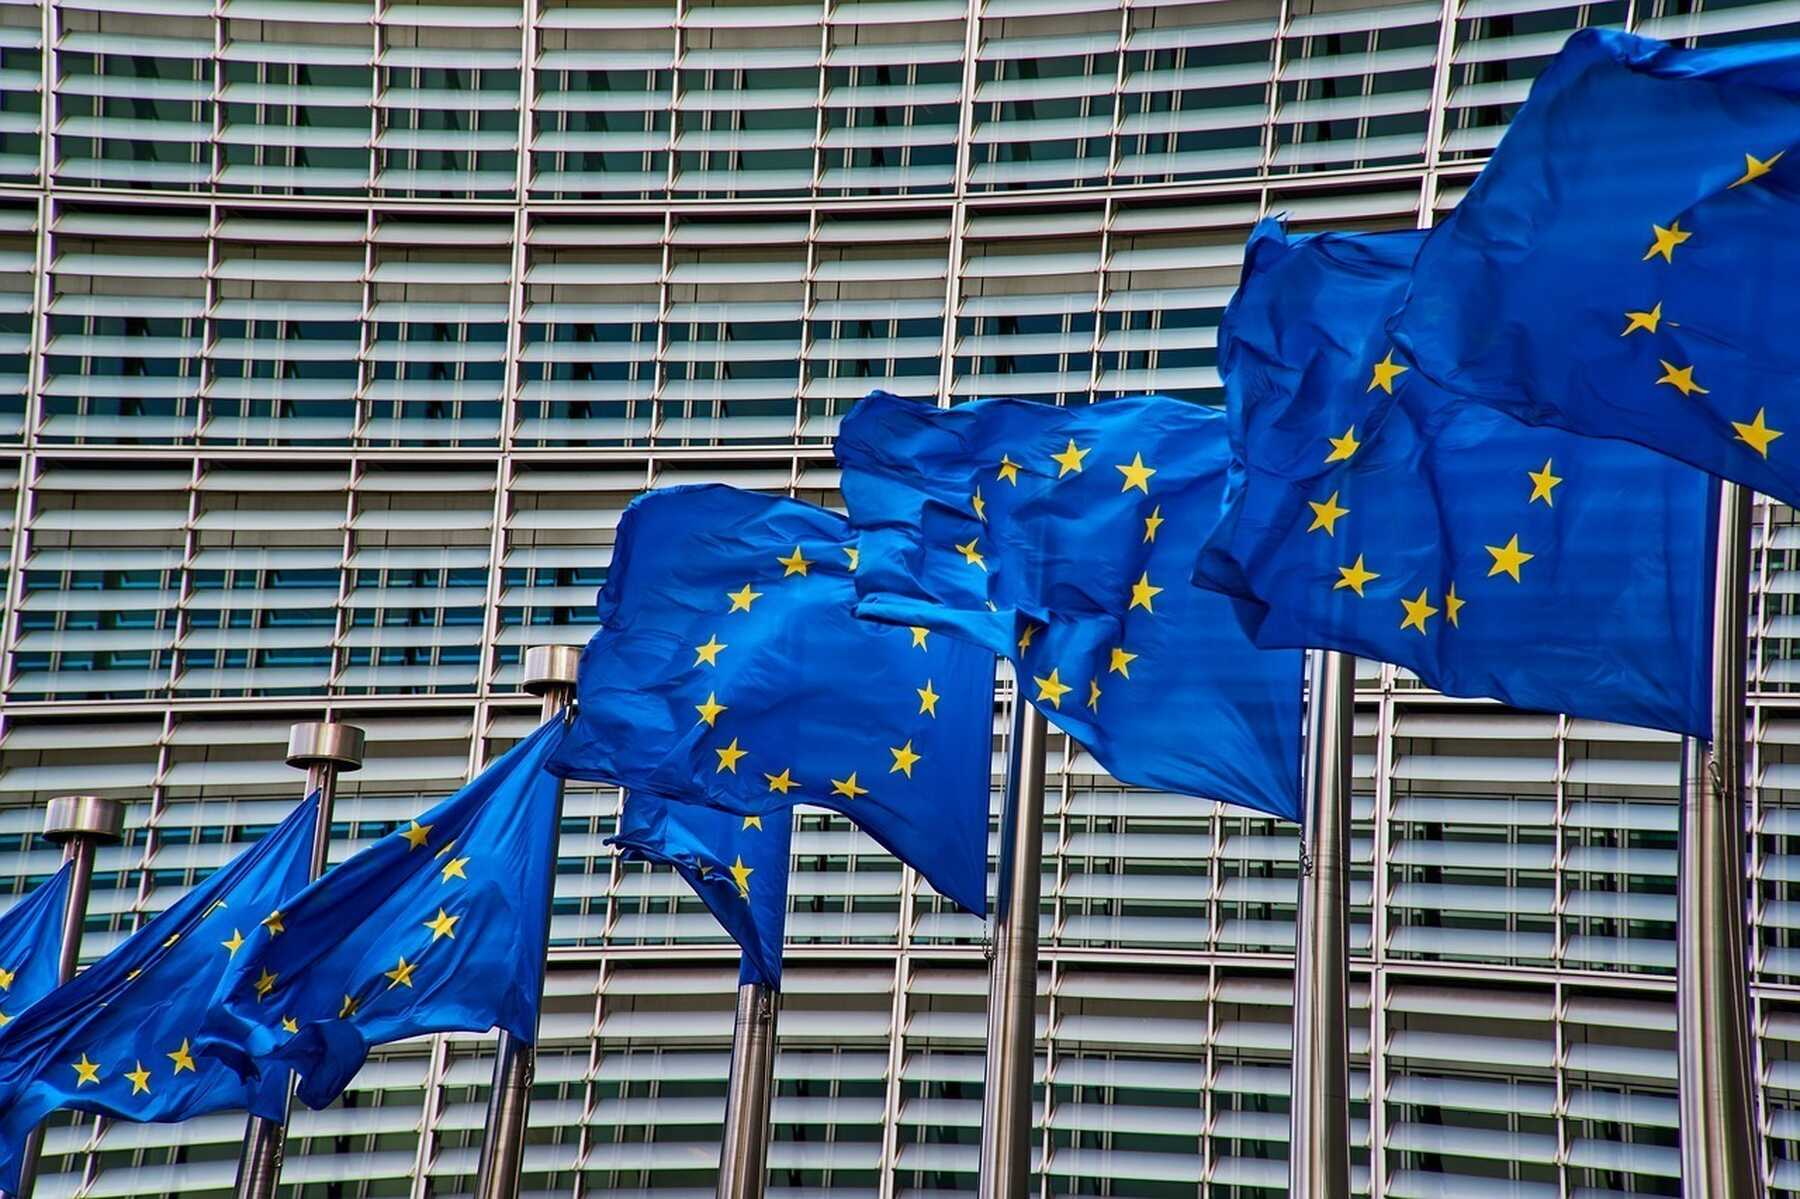 Will Europe's own revenues turn out to be a Trojan horse?